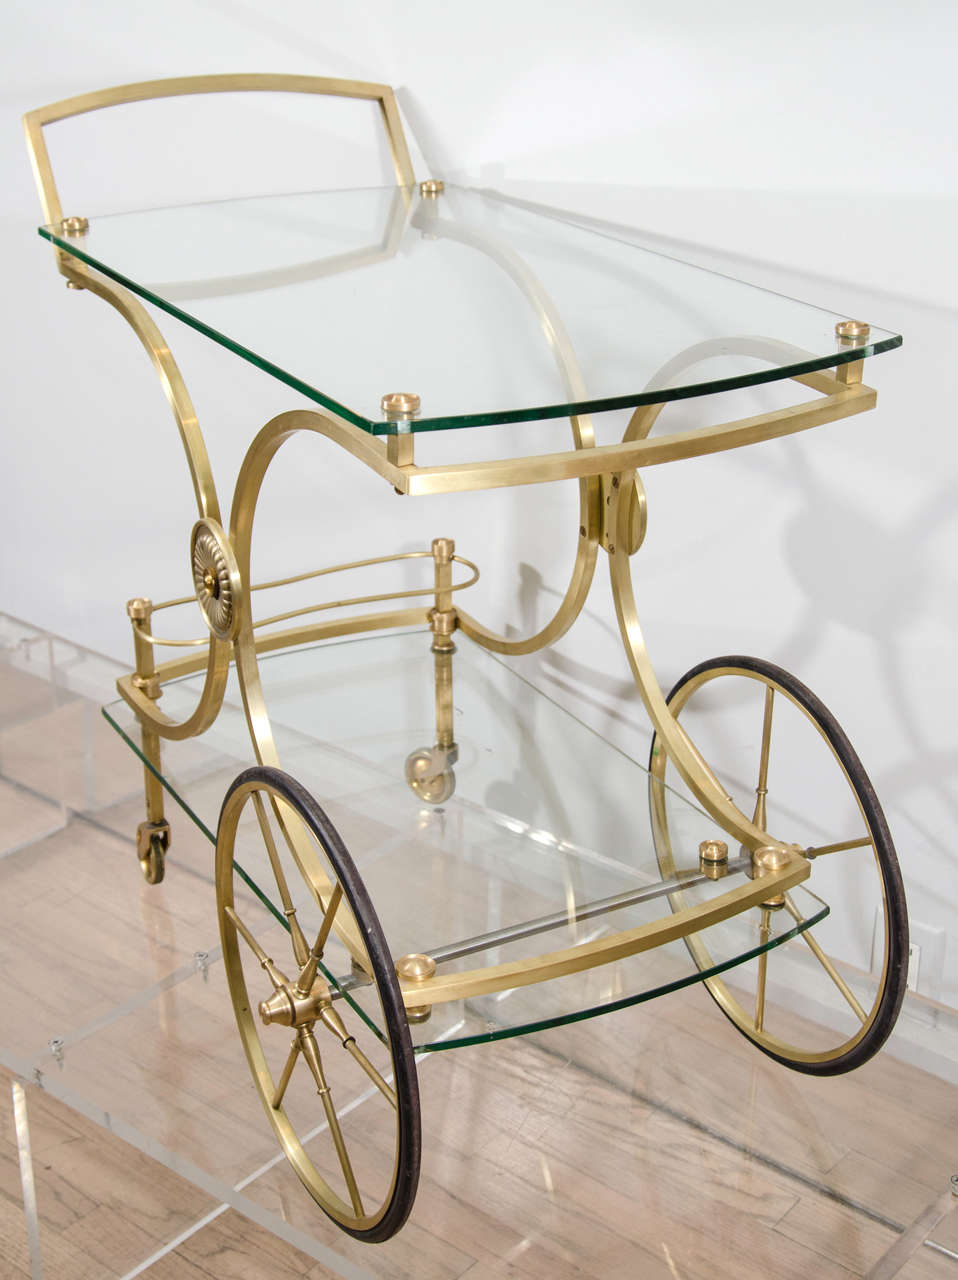 Elegant barcart finished in satin gilt brass with elevated glass tops.